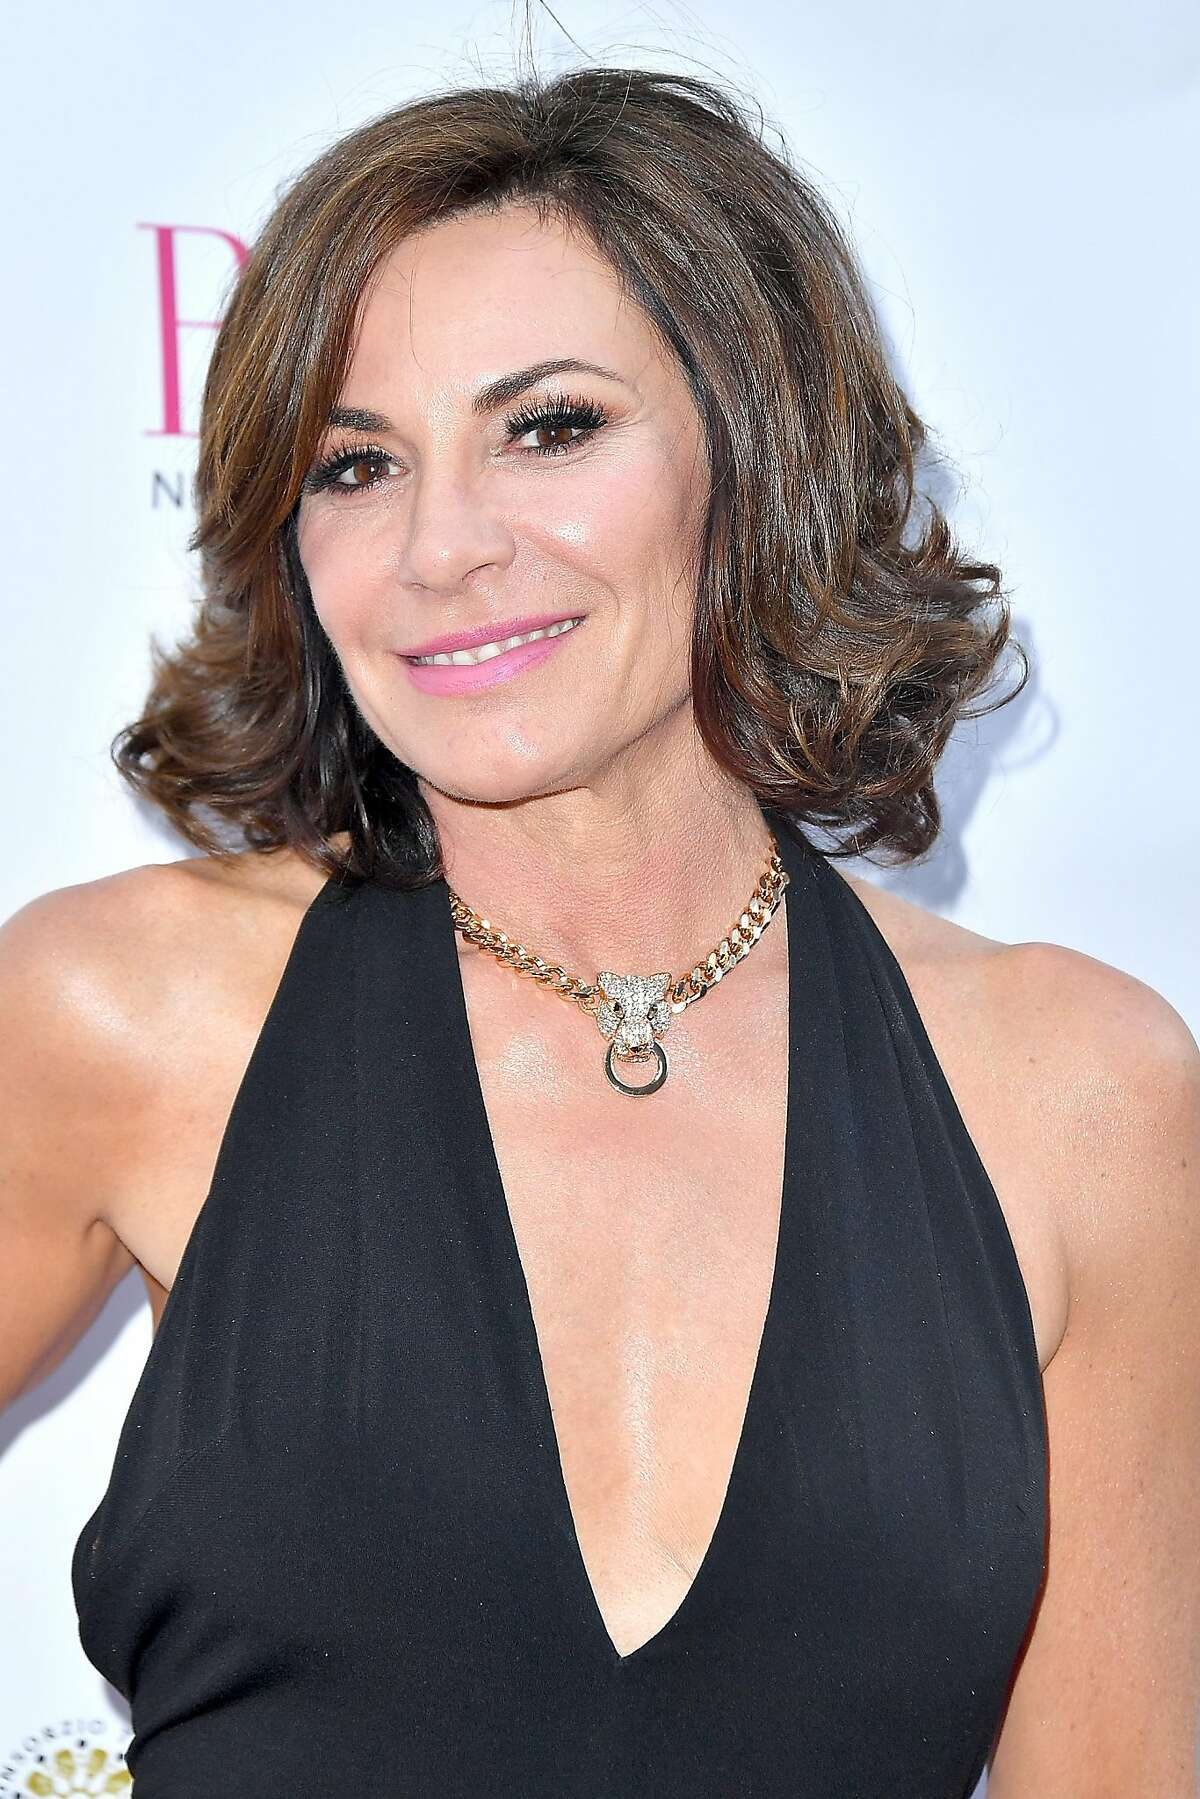 NEW YORK, NY - MAY 29: TV personality Luann de Lesseps attends Bella New York magazine's beauty cover launch at La Pulperia Restaurant on May 29, 2018 in New York City. (Photo by Michael Loccisano/Getty Images)